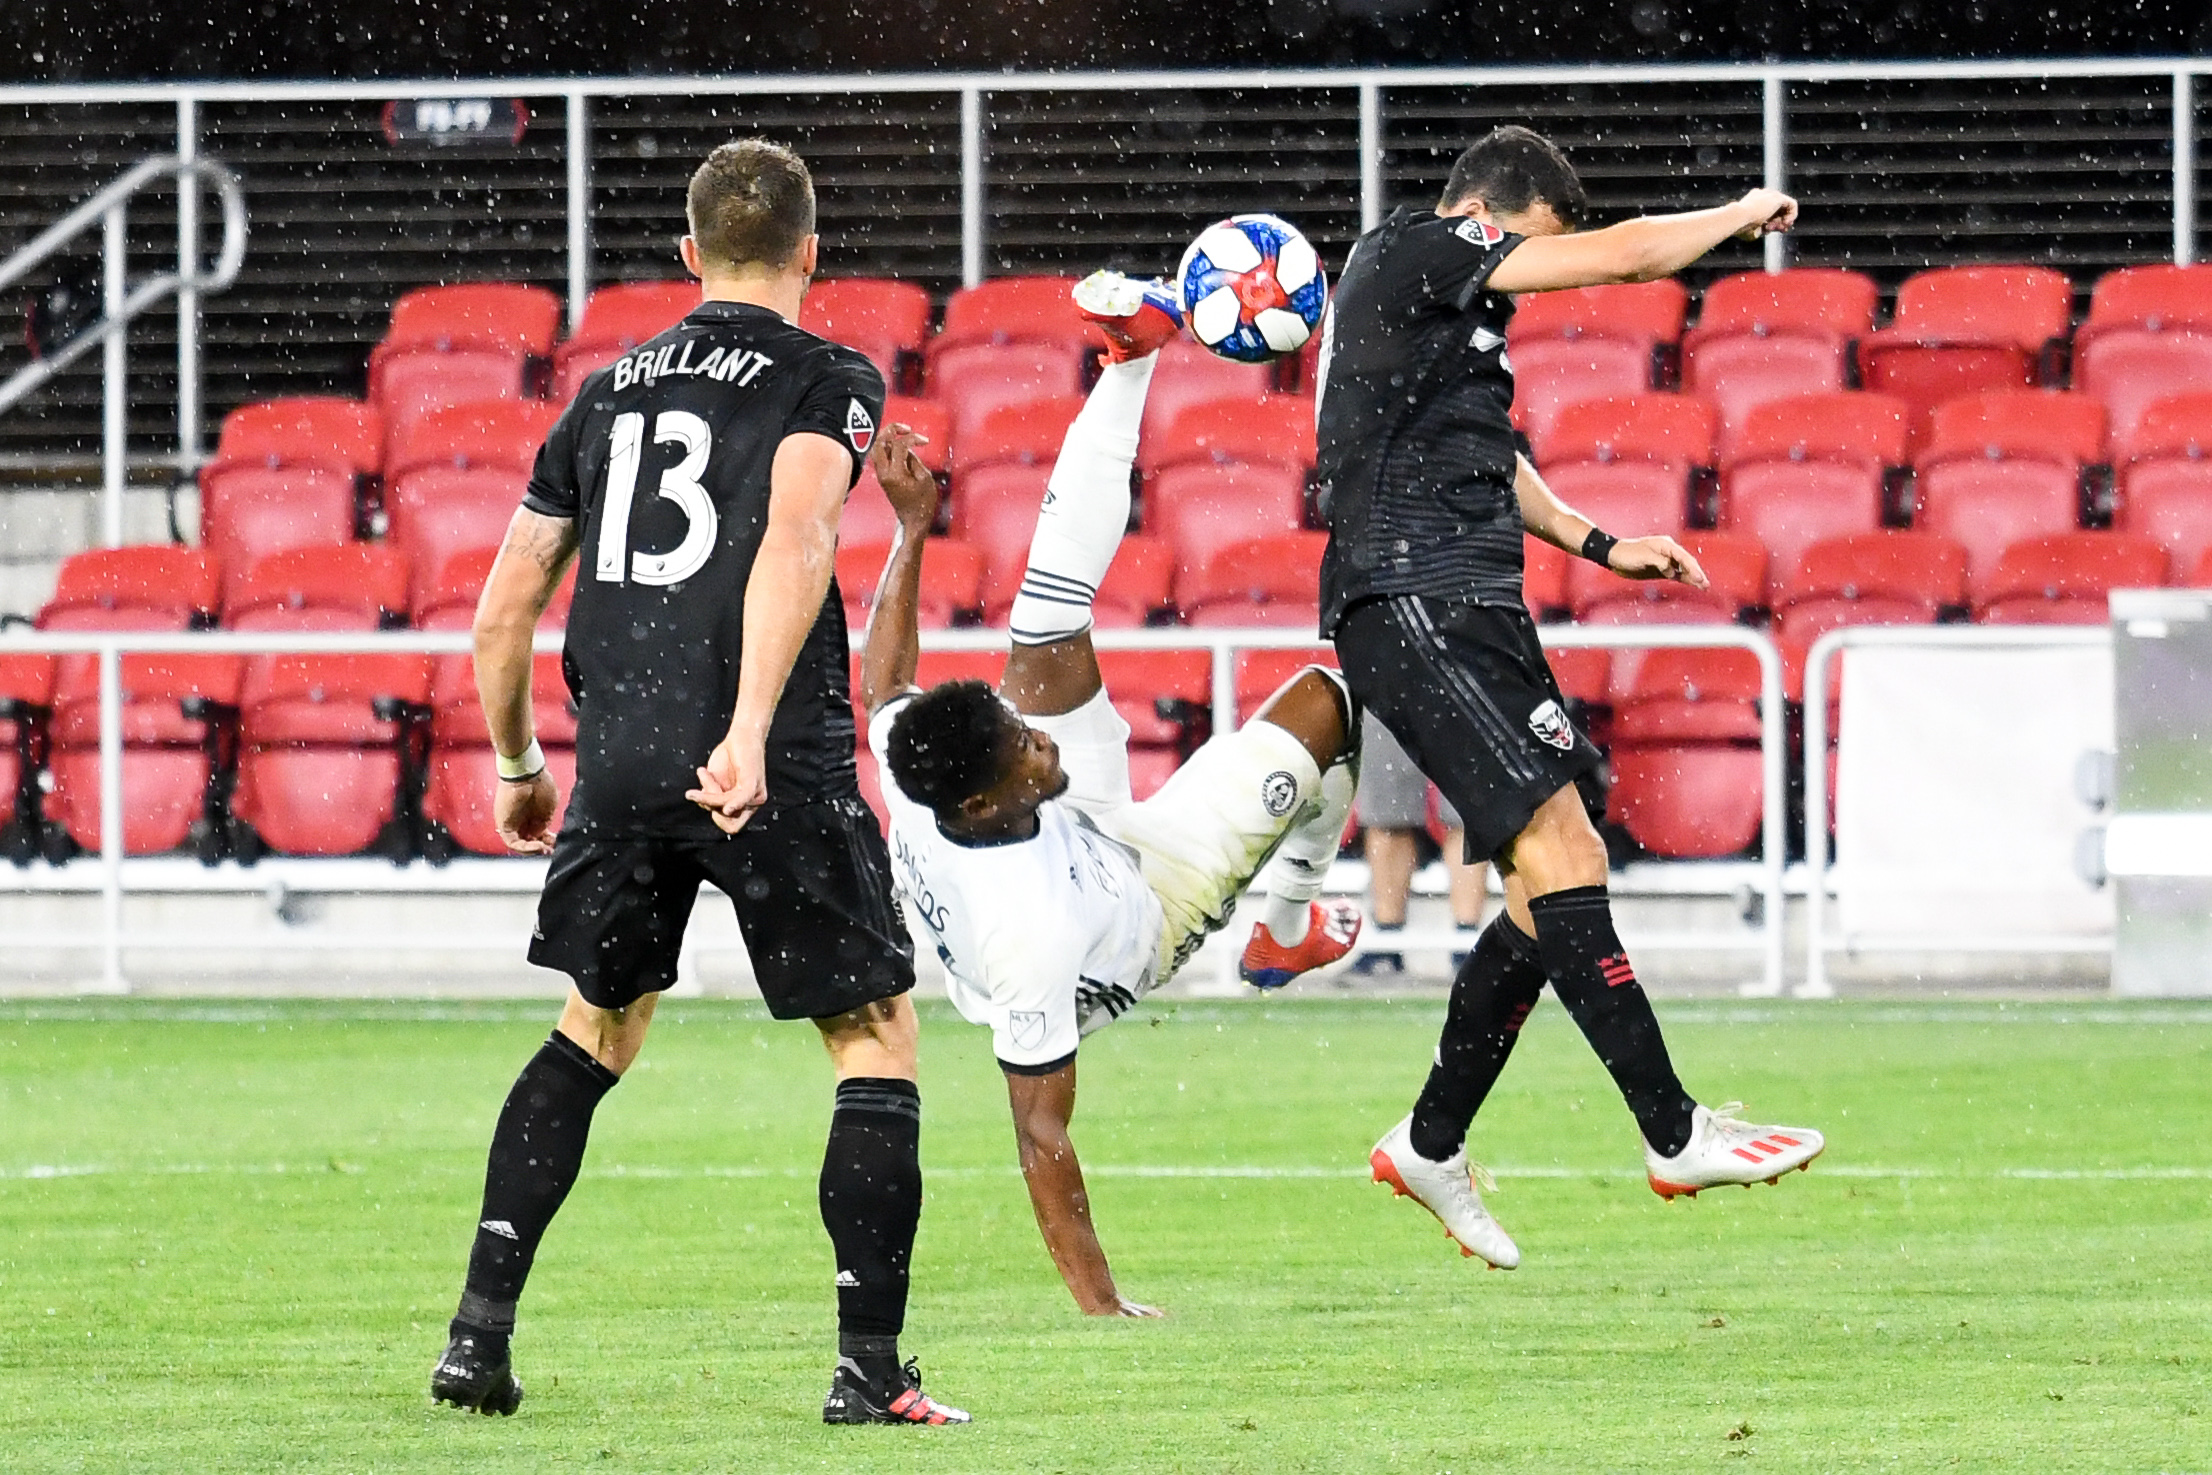 Sergio Santos attempts a bicycle kick for a goal in overtime.